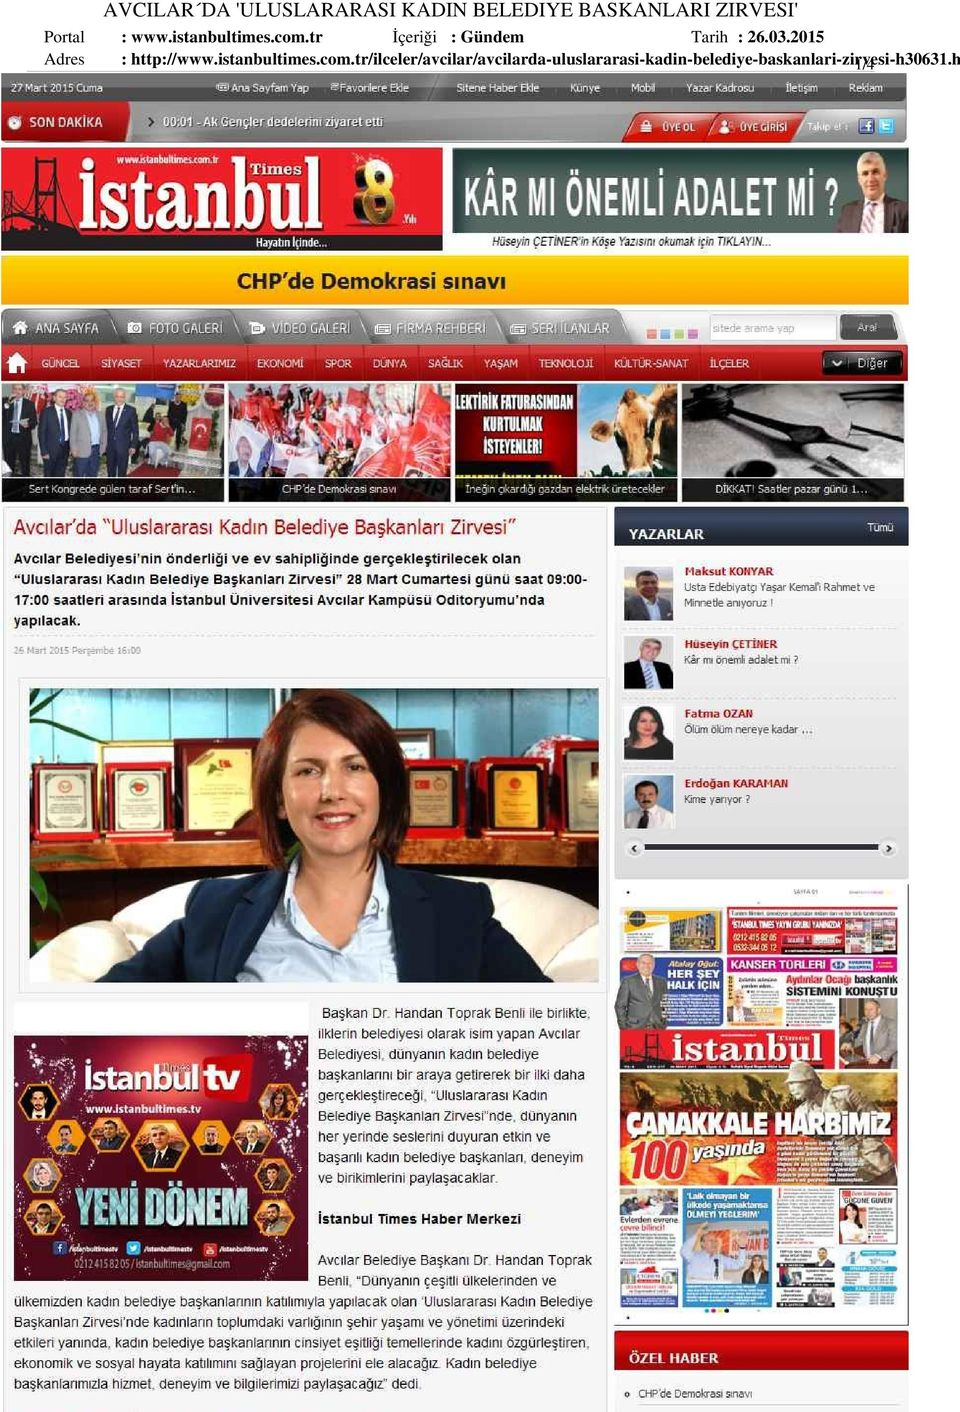 03.2015 : http://www.istanbultimes.com.